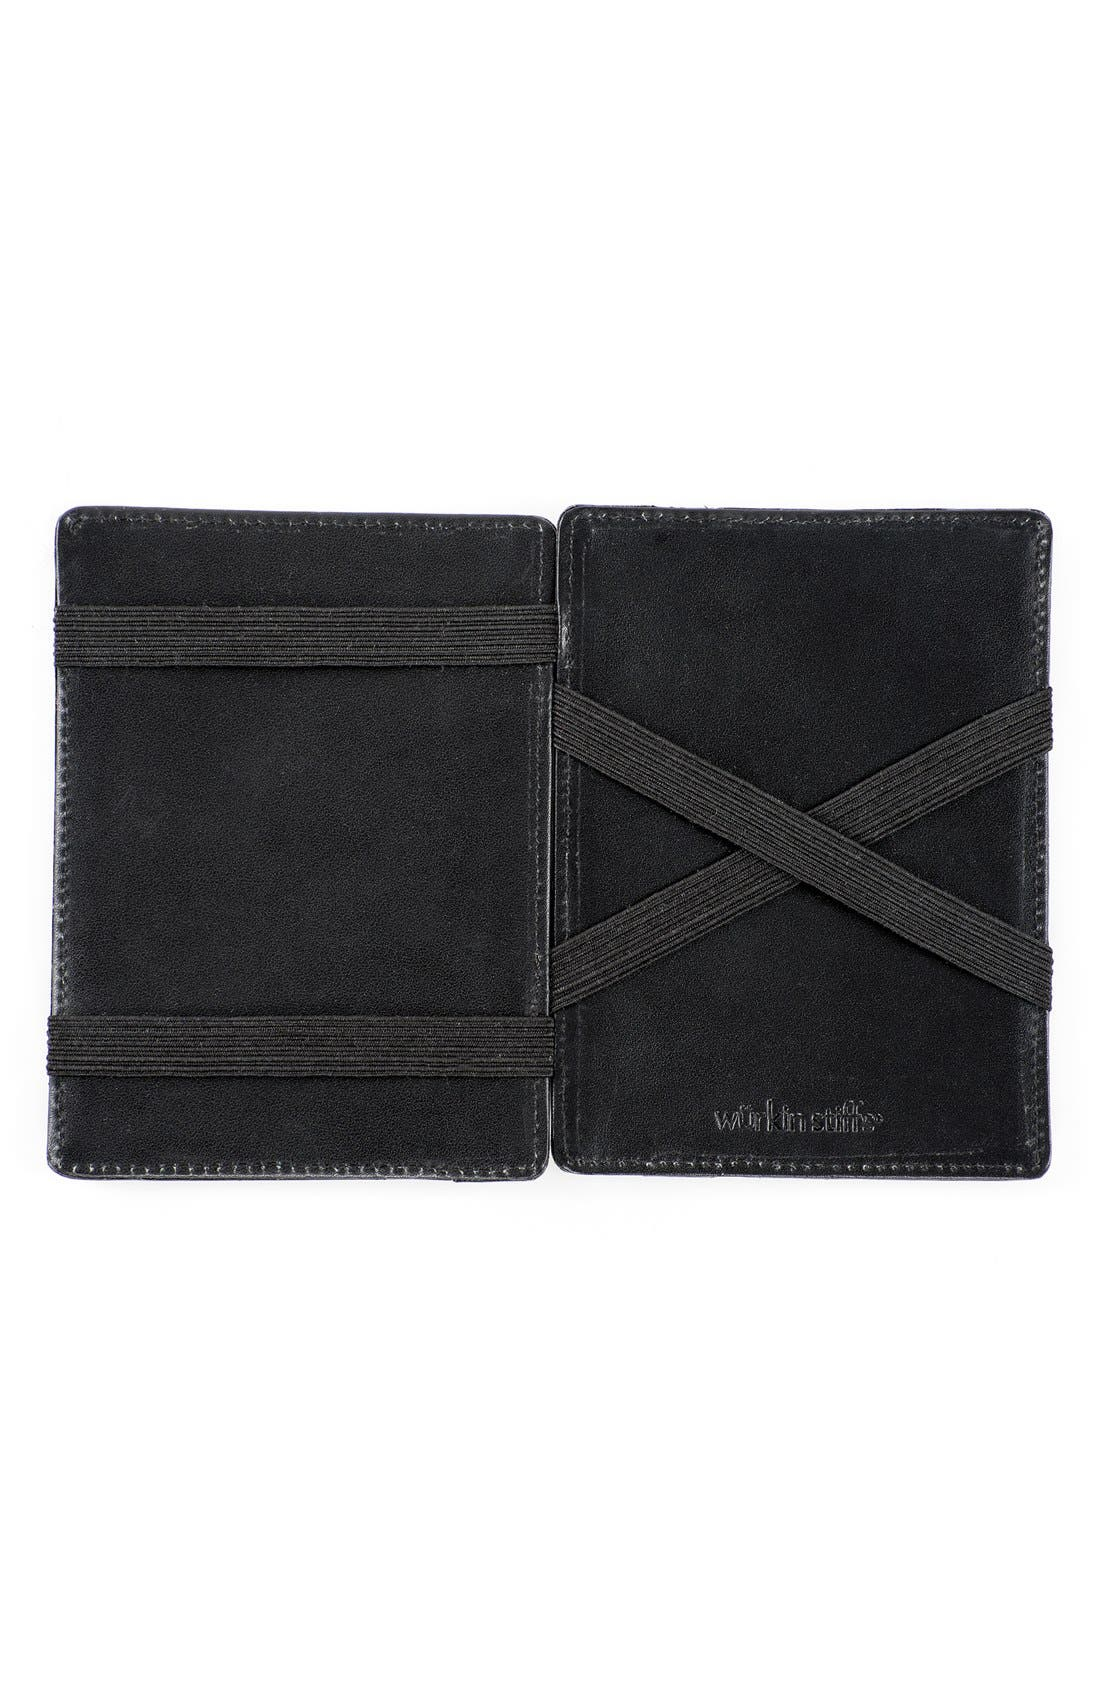 Würkin Stiffs Leather RFID Wallet,                             Alternate thumbnail 2, color,                             Black